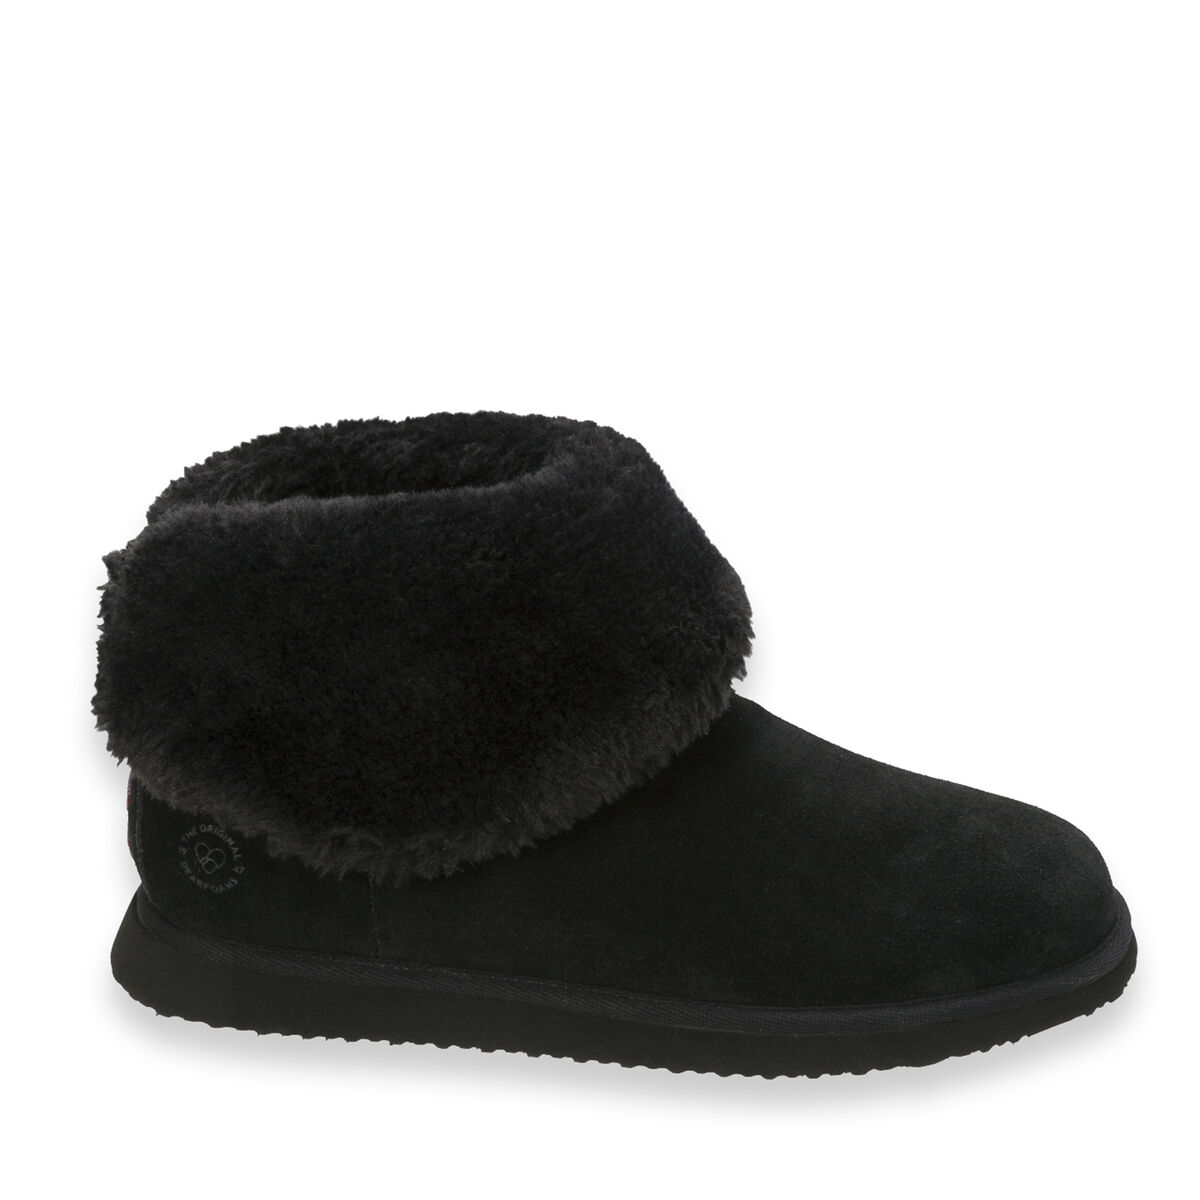 Women's Genuine Suede Bootie